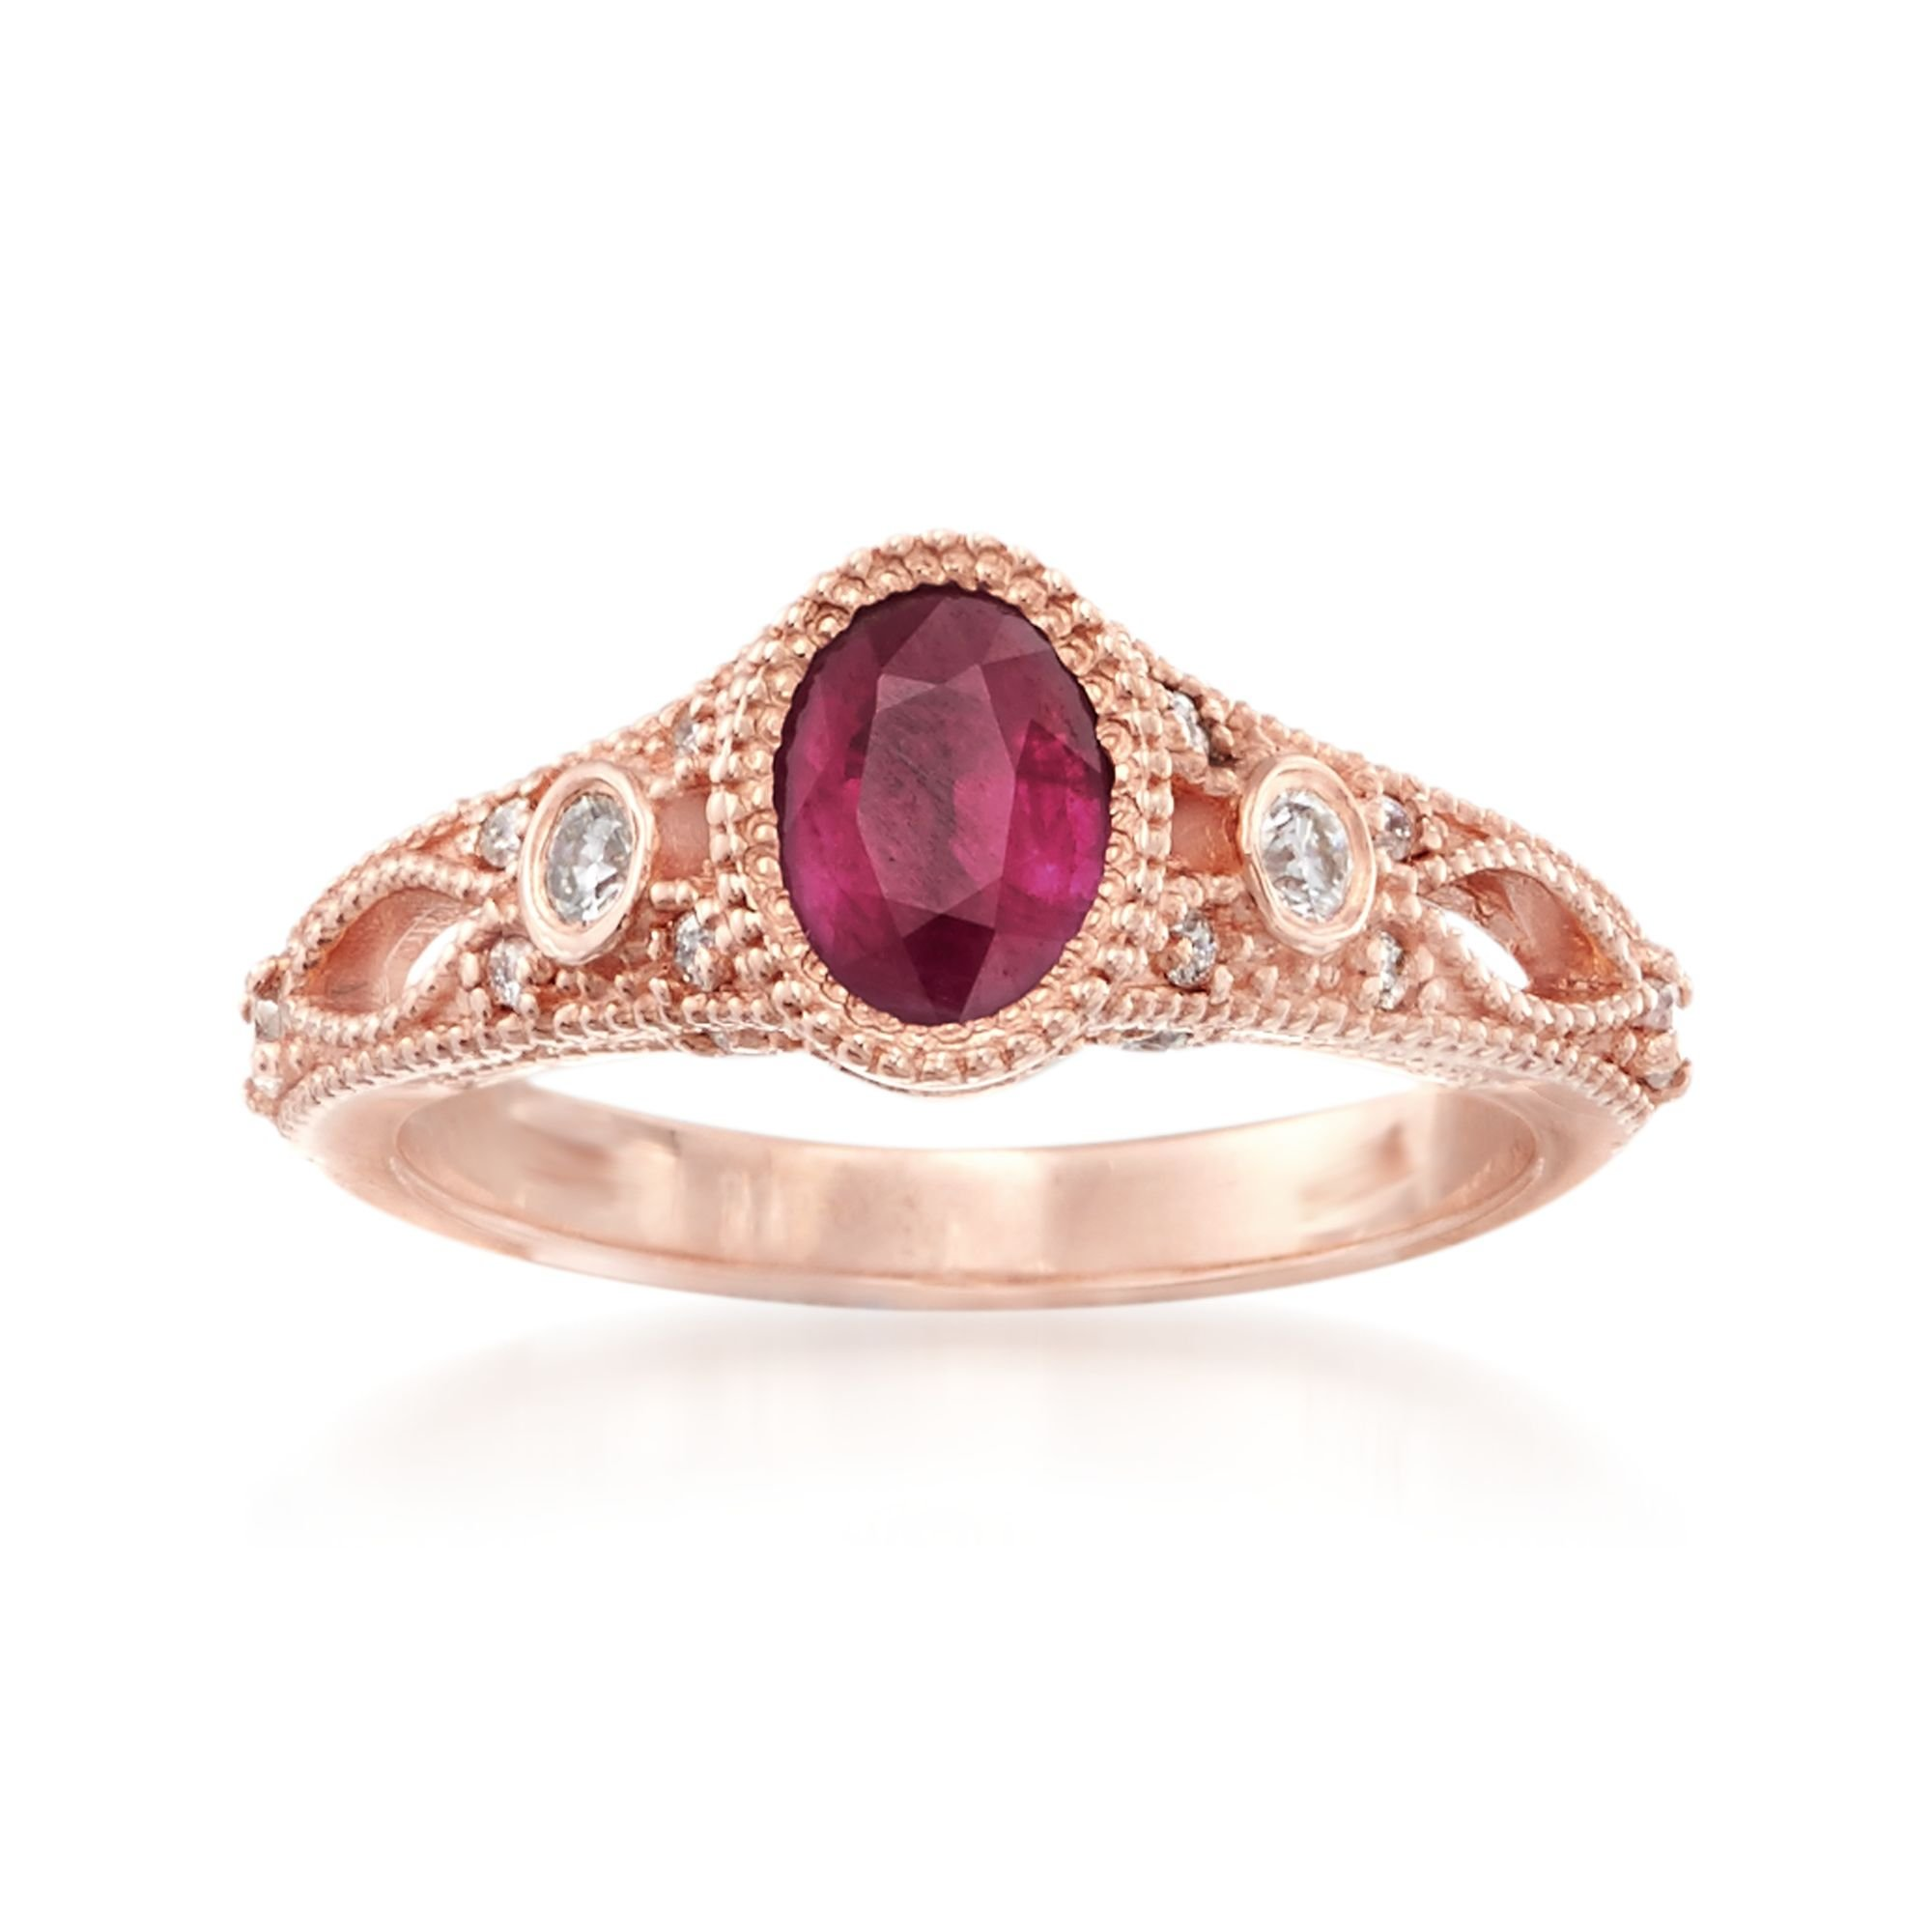 Ross-Simons Ruby and .25 ct. t.w. Diamond Ring in 14kt Rose Gold